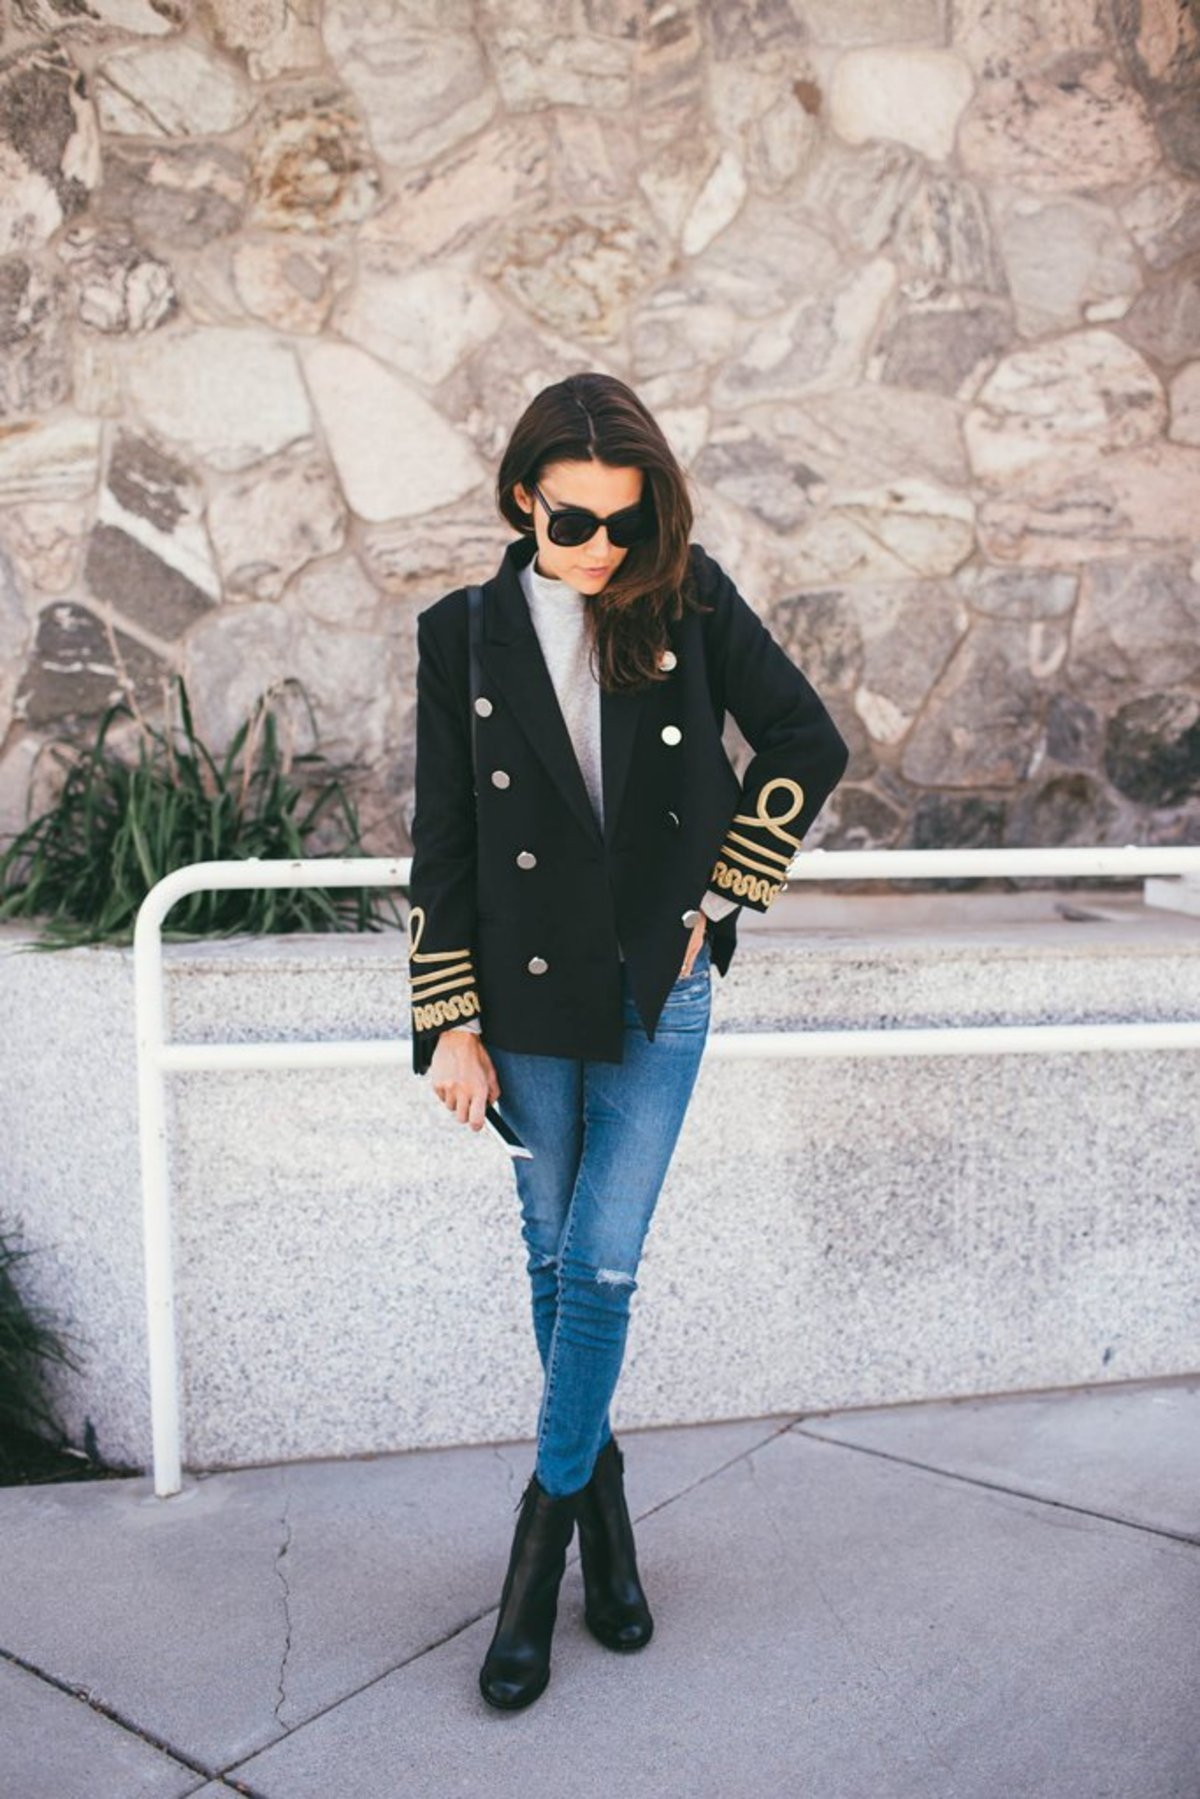 double-breasted-blazer-layered-over-mock-neck-sweater-jeans-ankle-boots